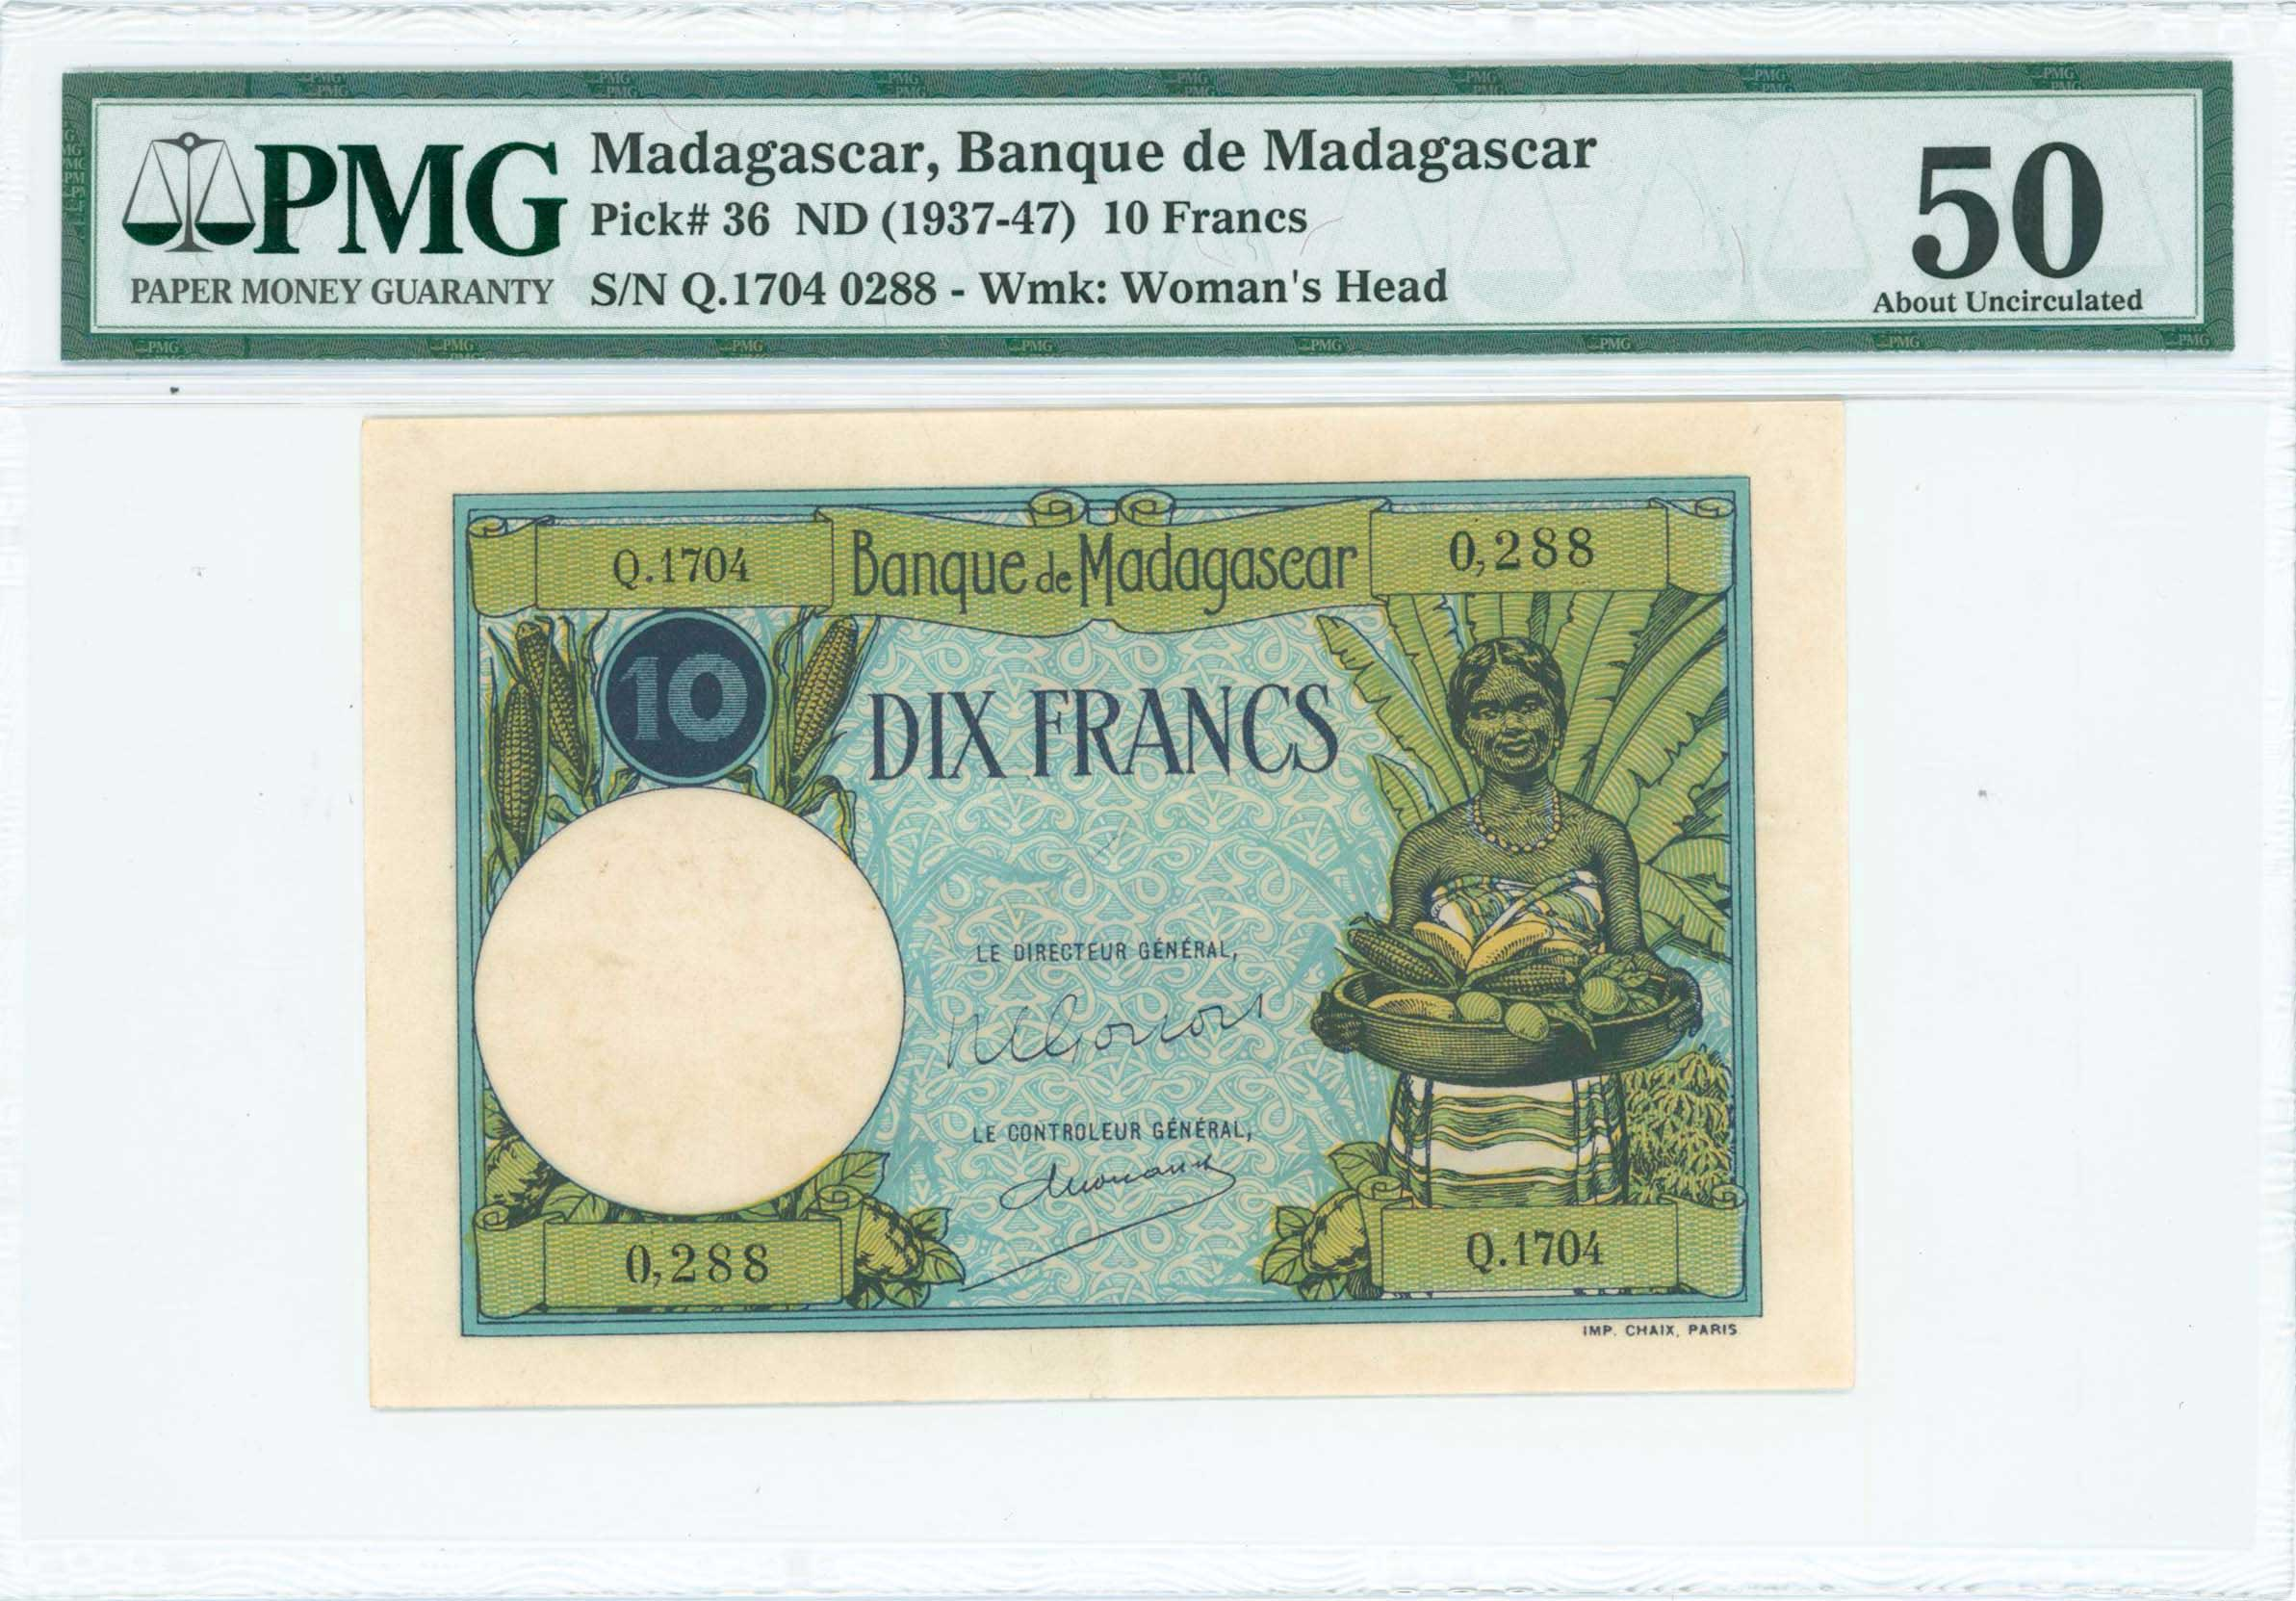 Lot 7376 - -  PAPER MONEY - BANKNOTES BANKNOTES OF AFRICAN COUNTRIES -  A. Karamitsos Public & Live Internet Auction 671 (Part B)